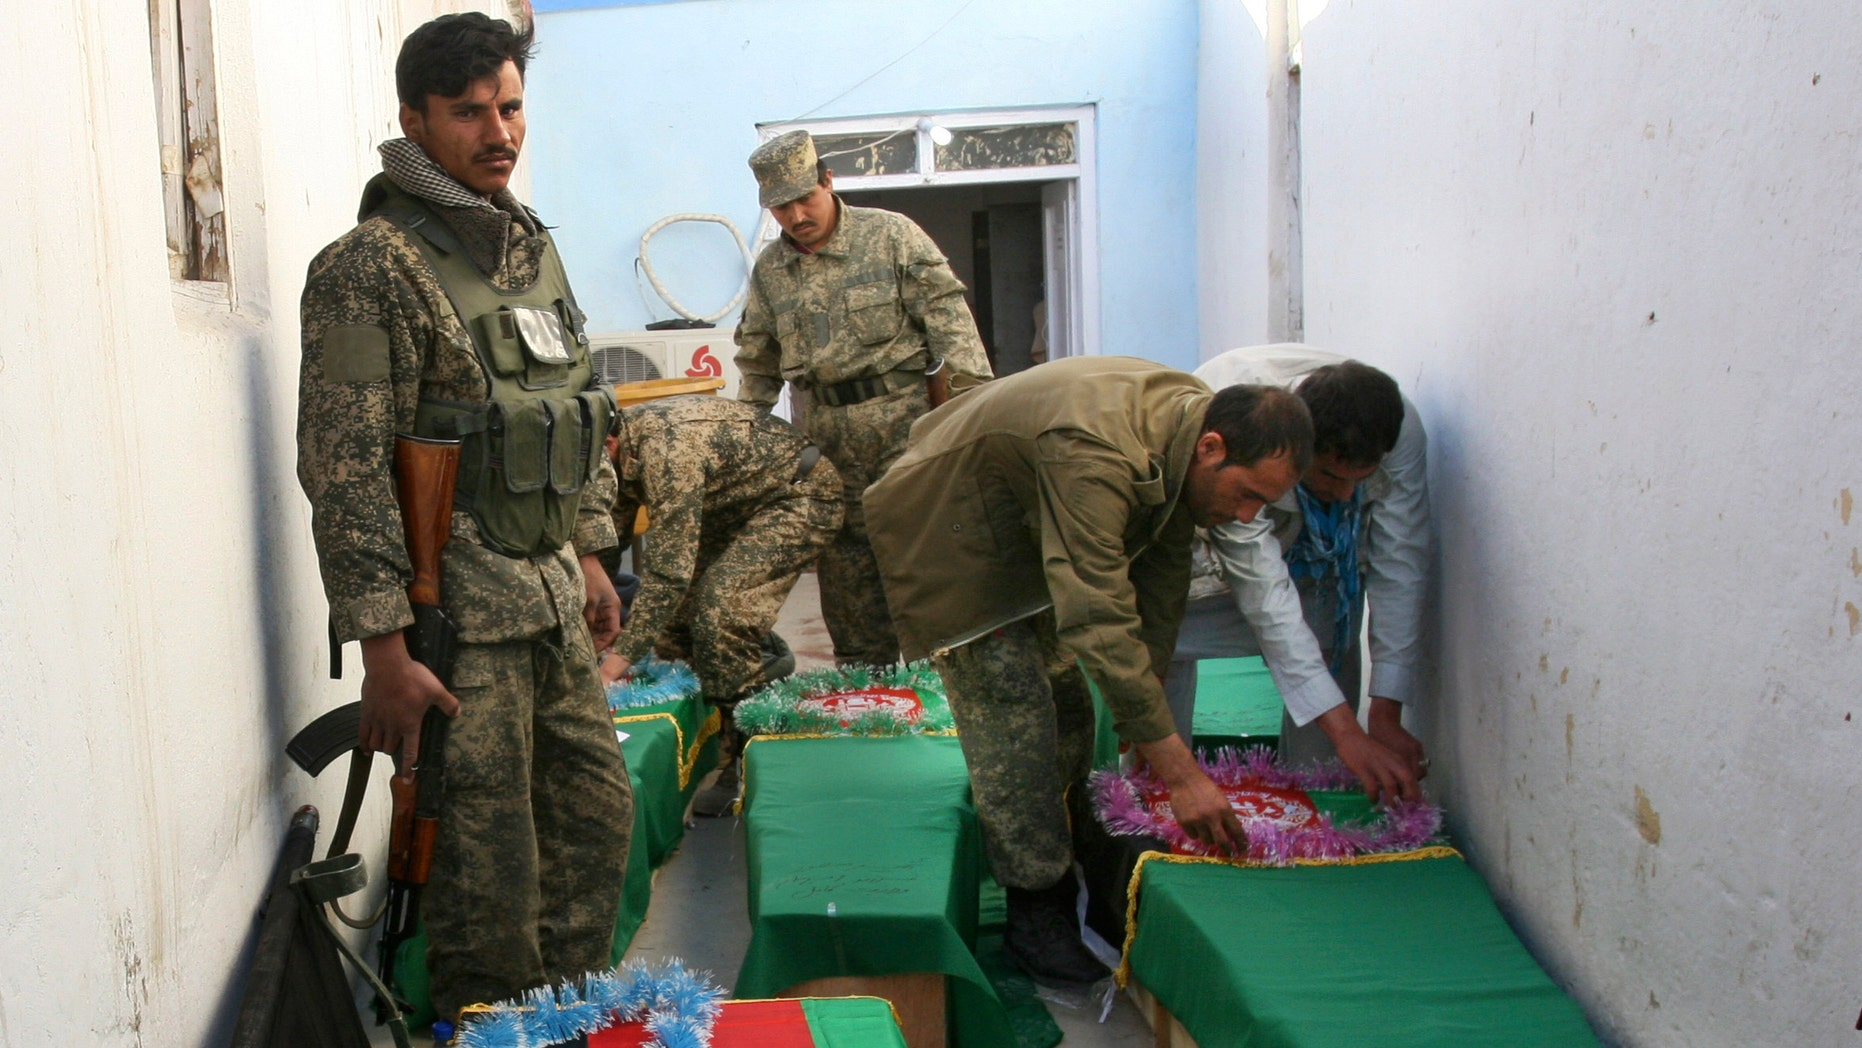 April 17, 2013: Afghan Army soldiers prepare the coffins for their killed comrades in the morgue of the main hospital in Ghazni, Afghanistan. A roadside bomb killed the five soldiers who were part of a government security force guarding a convoy of trucks in Ghazni's Qarabagh district. Roadside bombs and insurgent attacks killed dozens of people in five separate attacks across Afghanistan as violence steadily rises during this year's spring fighting season, officials said Wednesday.